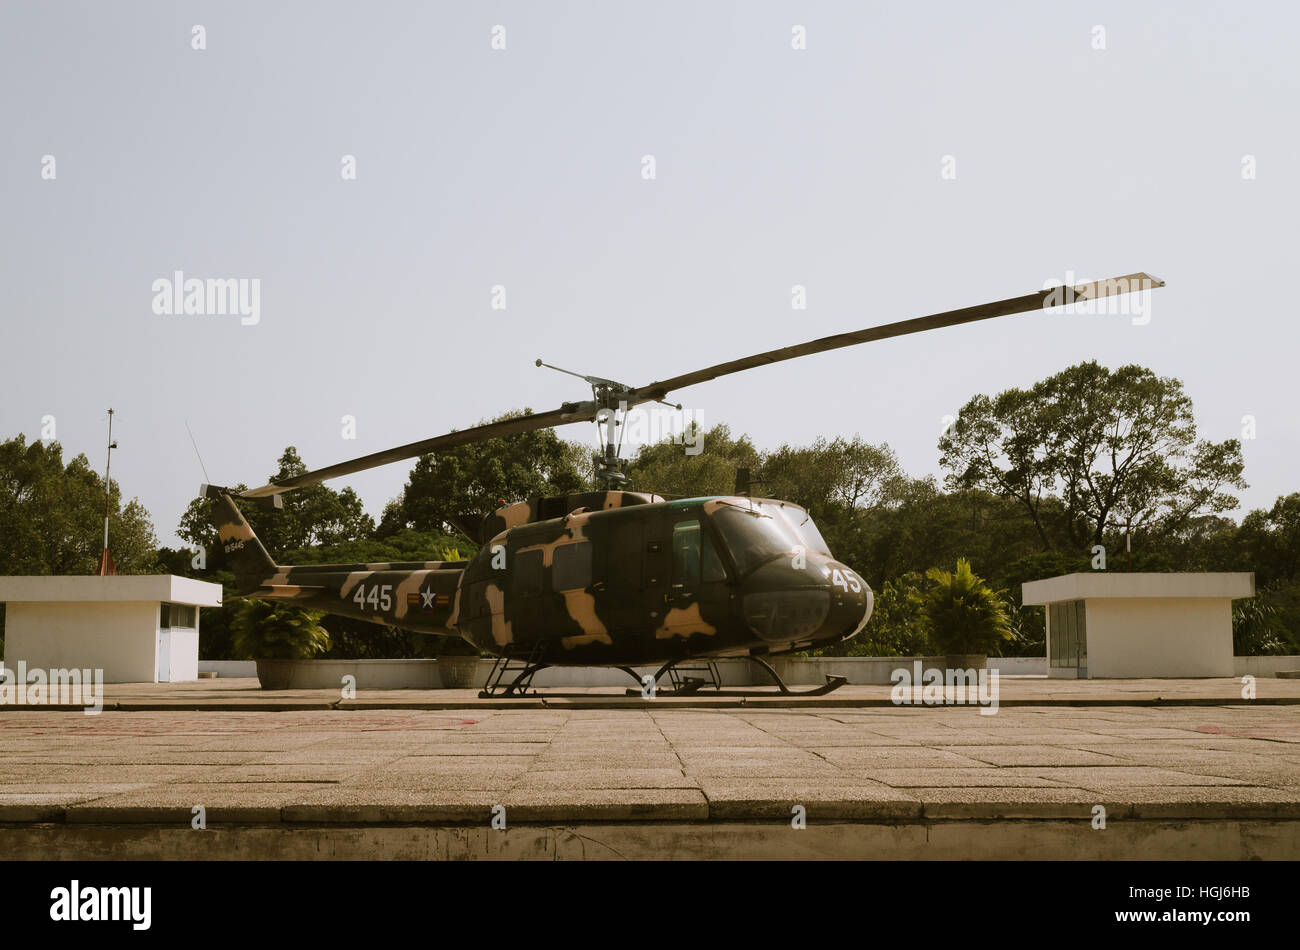 A Vietnam War era American military helicopter on display in